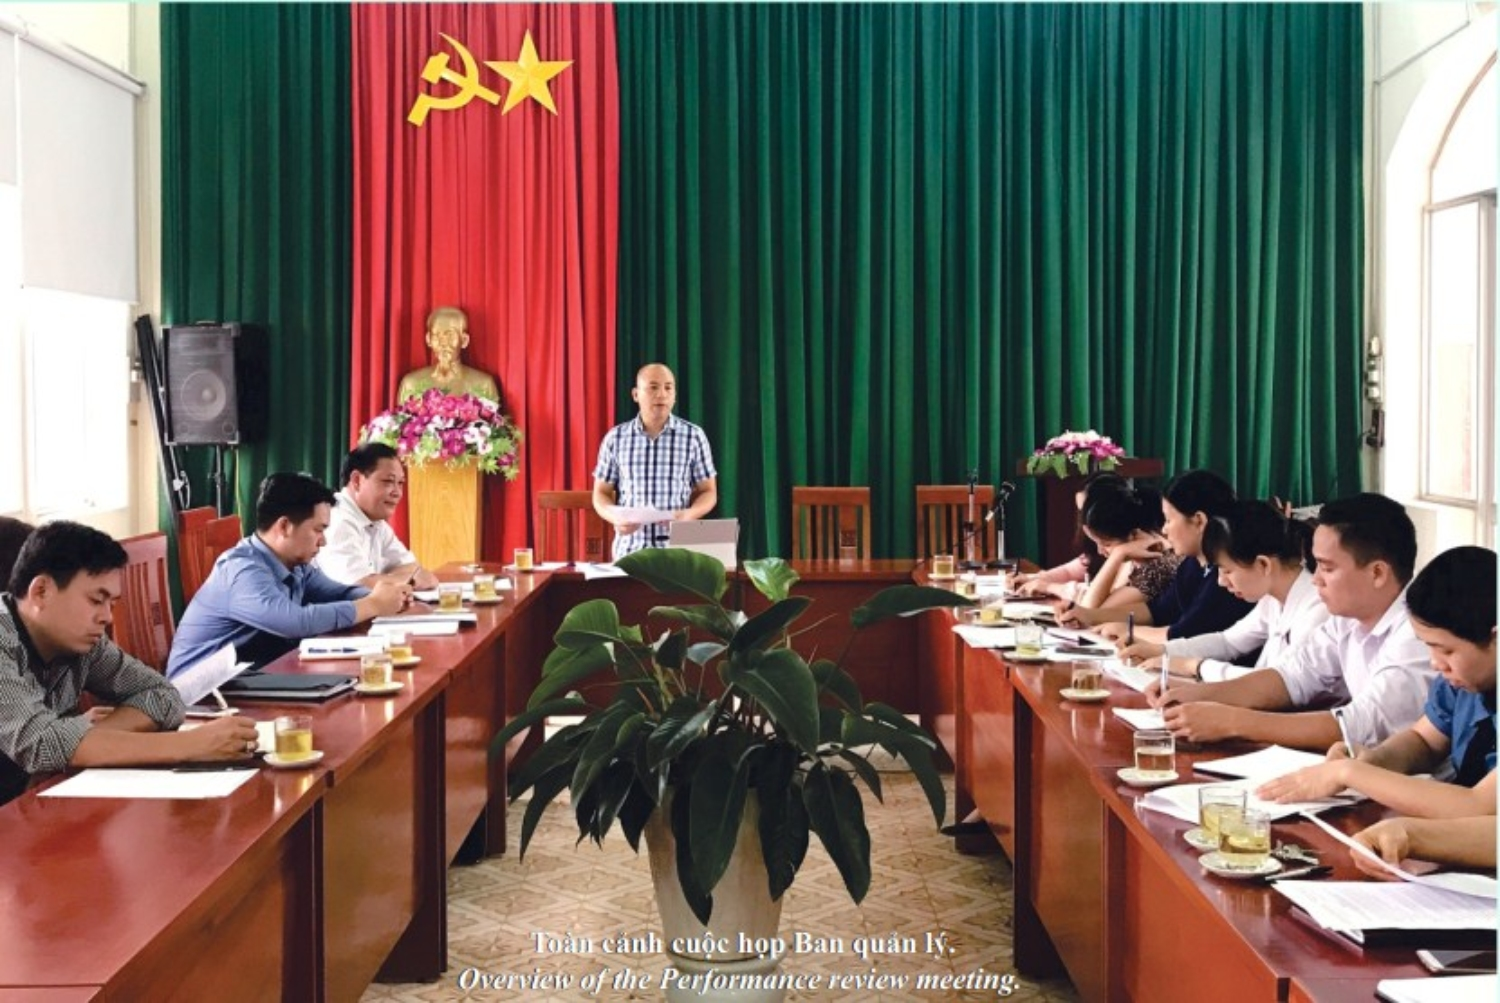 The Performance Review Meeting of Management board of Non nuoc Cao Bang geopark